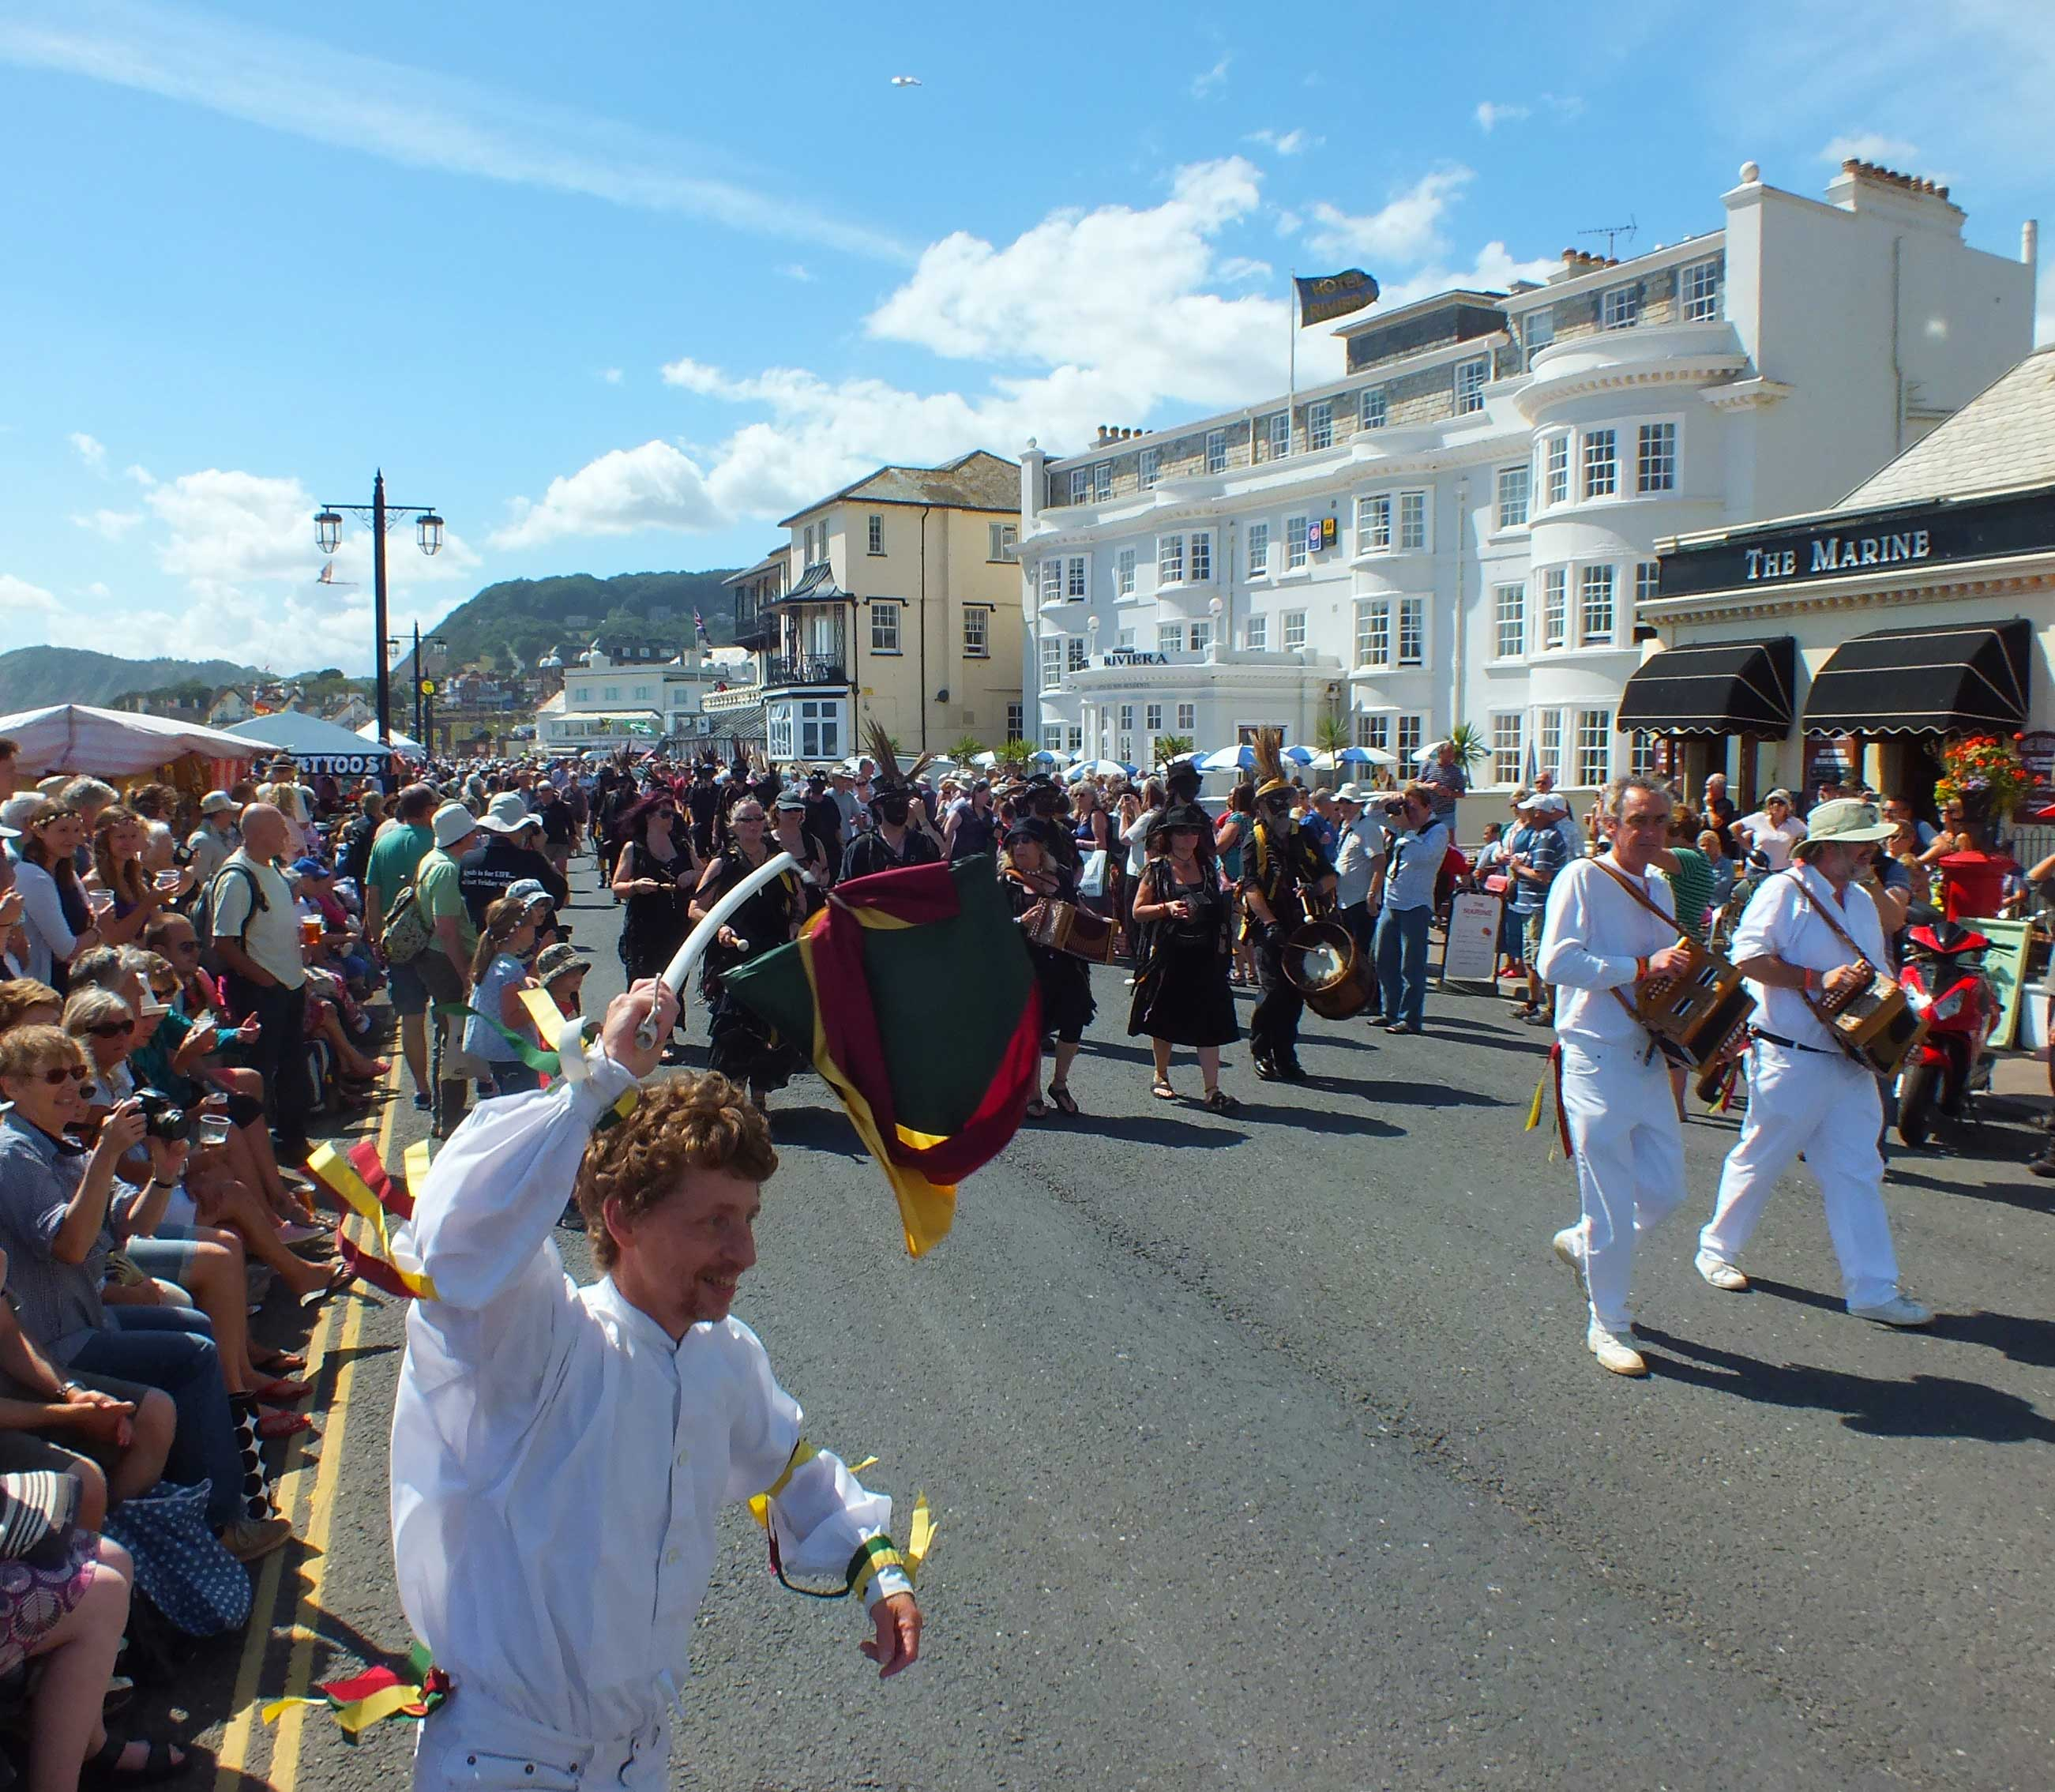 A parade along the seafront